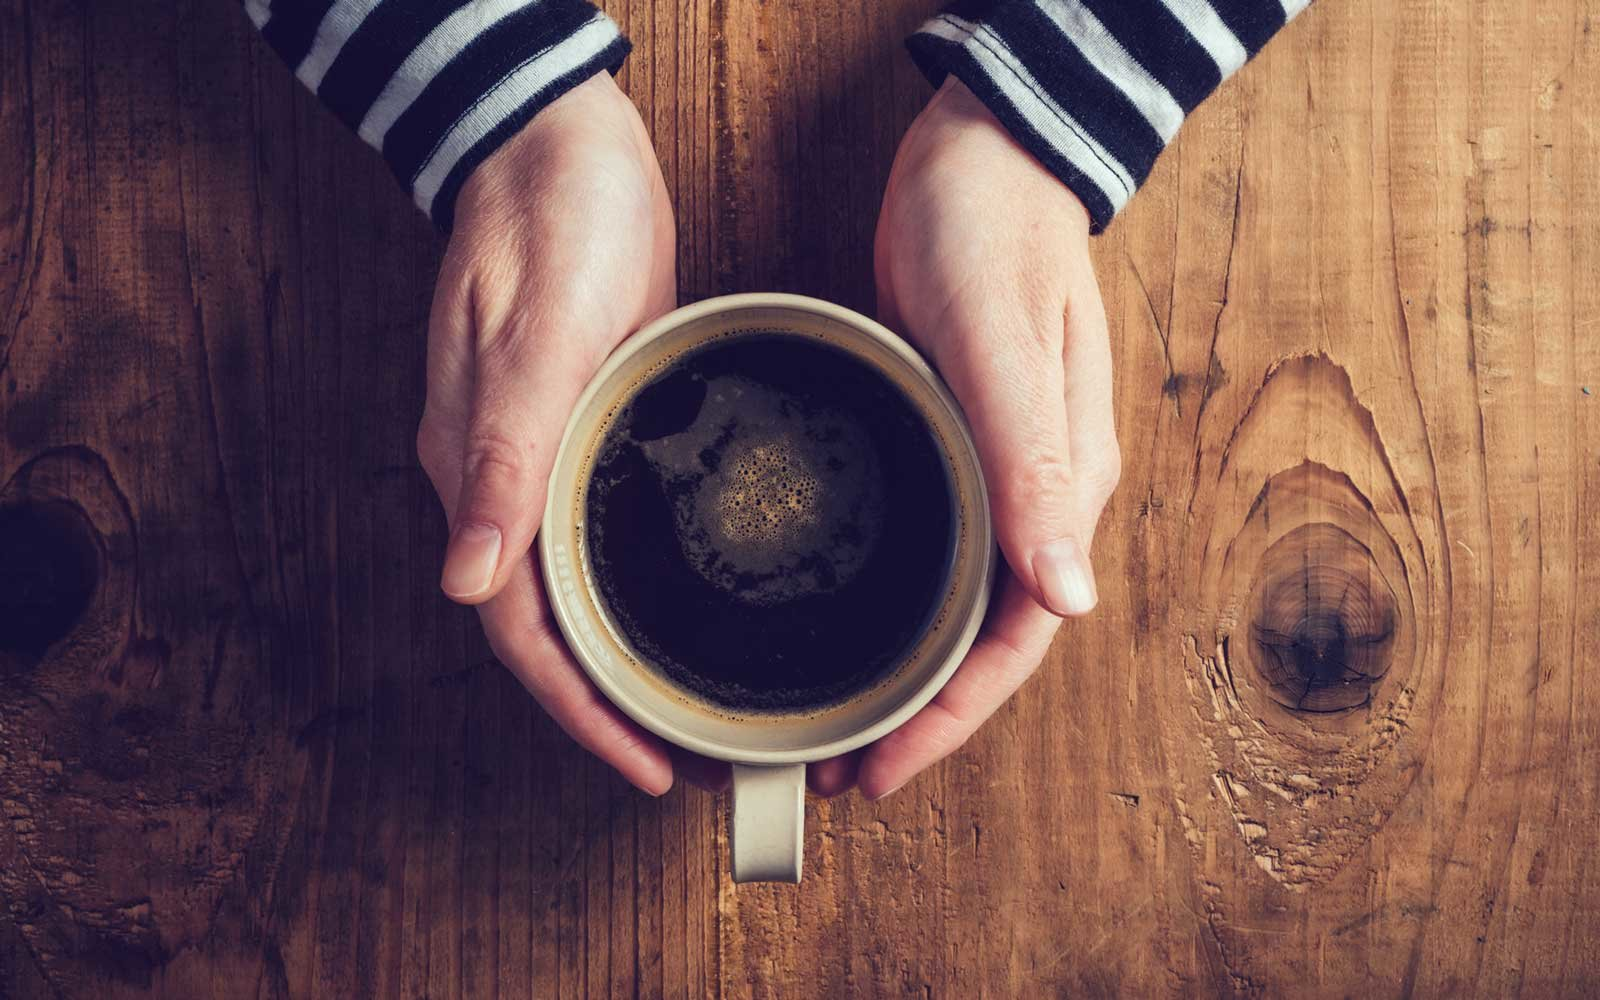 You've Been Holding Your Coffee Cup All Wrong